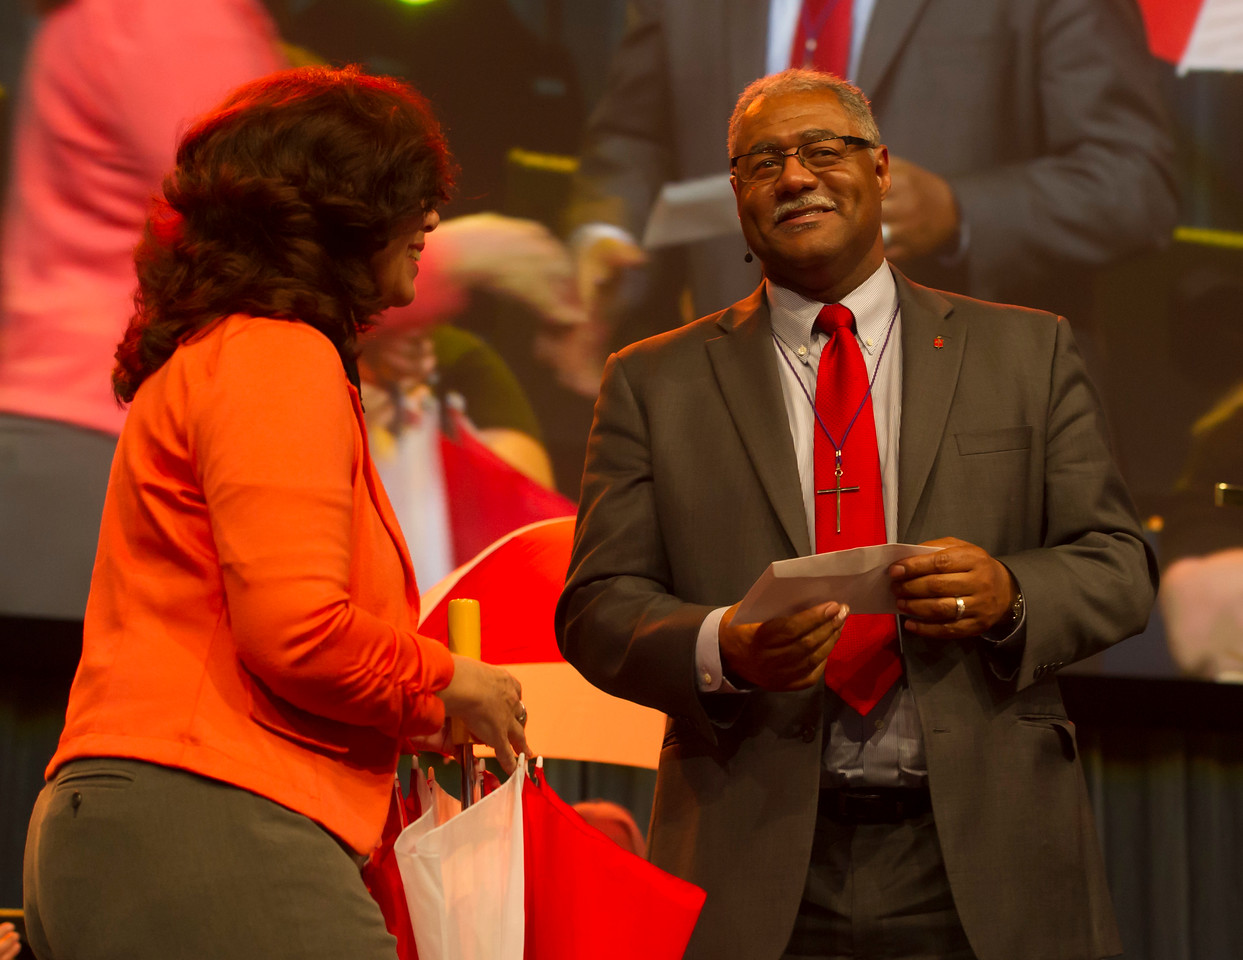 Manet Shettle (left), President of the UM Foundation of Indiana and the Savings and Loan Ministry, presents a check to Bishop Julius C. Trimble at the Friday Plenary at the 2017 INUMC Annual Conference in Indianapolis.